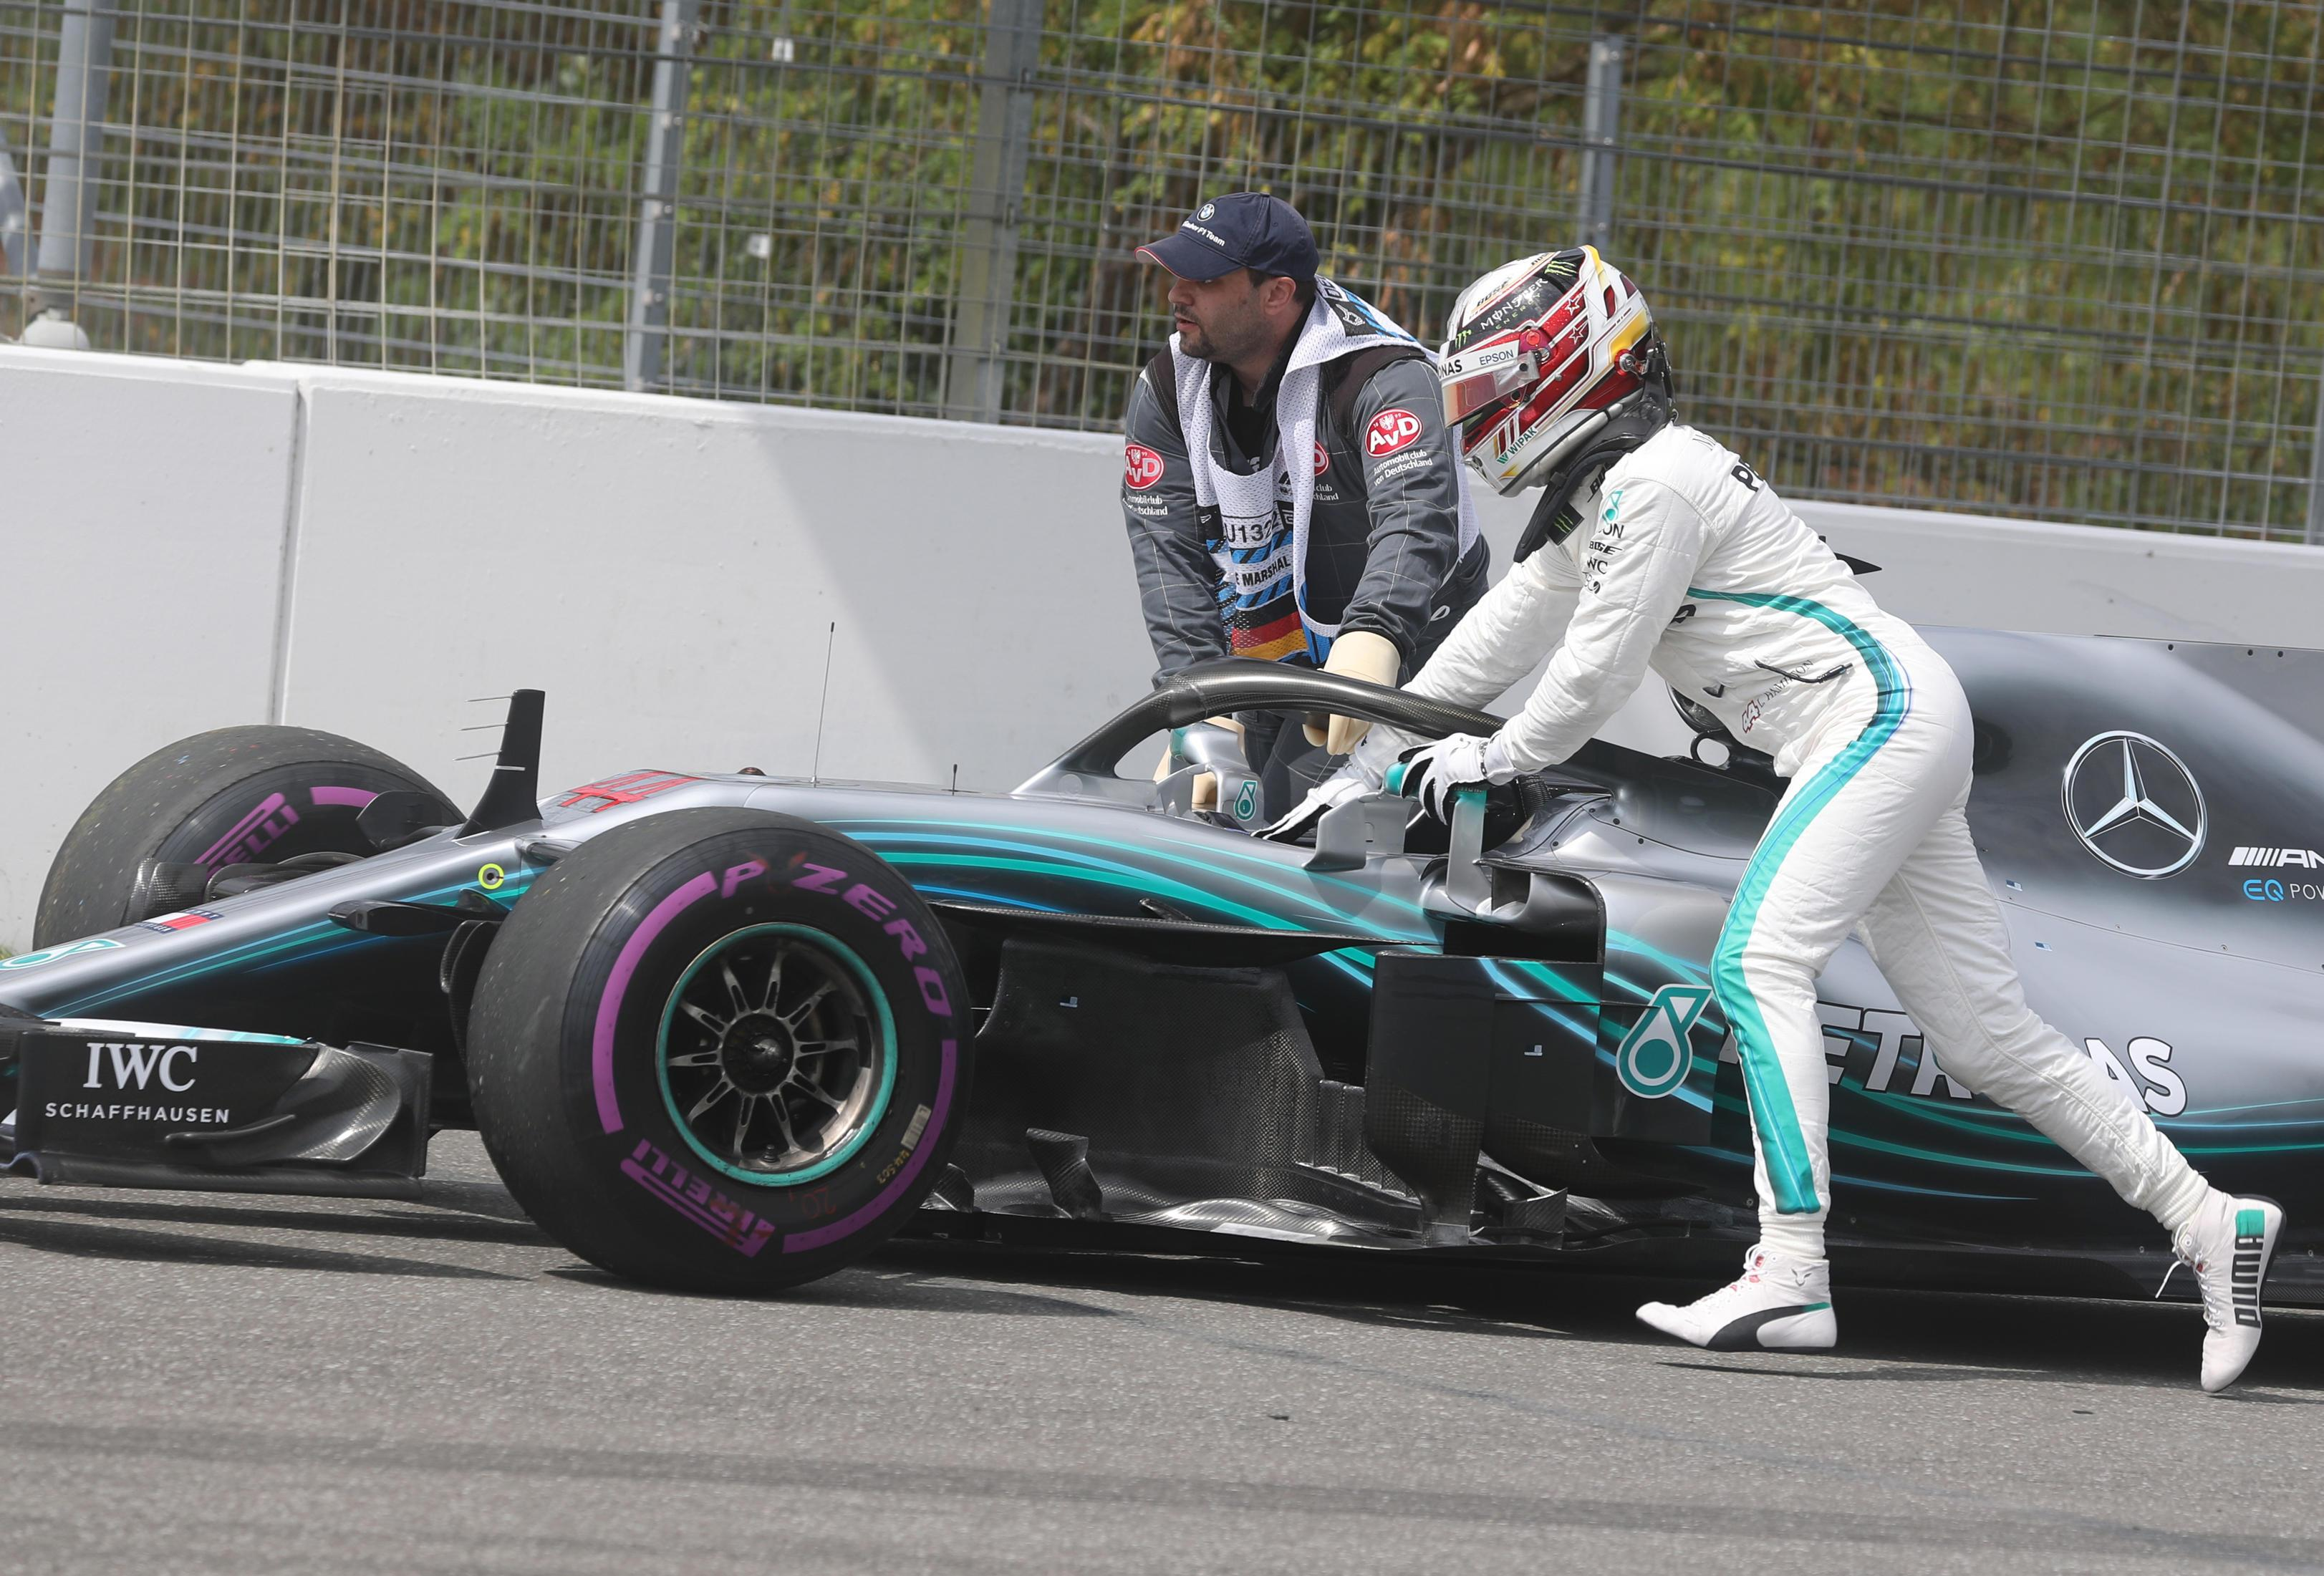 Lewis Hamilton cut a dejected figure as he struggled to push car back to pits